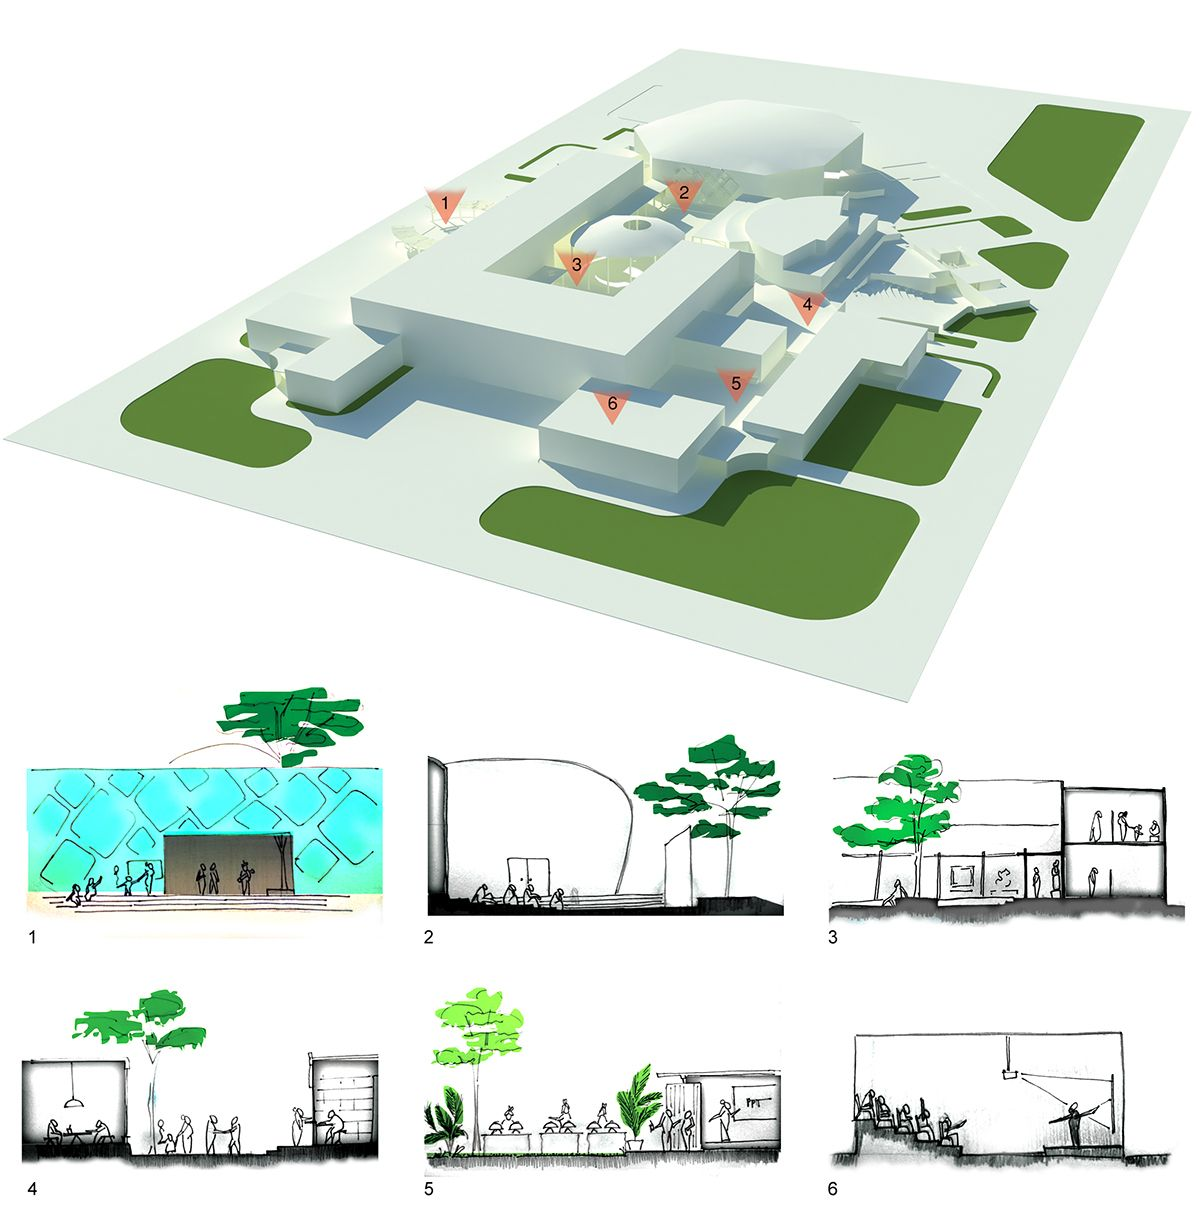 architecture thesis cultural centre Final semester thesis projecta proposal for the indraprastha sanskriti kala kendra, a socio-cultural centre in dwarka, delhi the aim of the project was to design a socio-cultural centre with adequate built and open spaces and to revitalize the drain a.